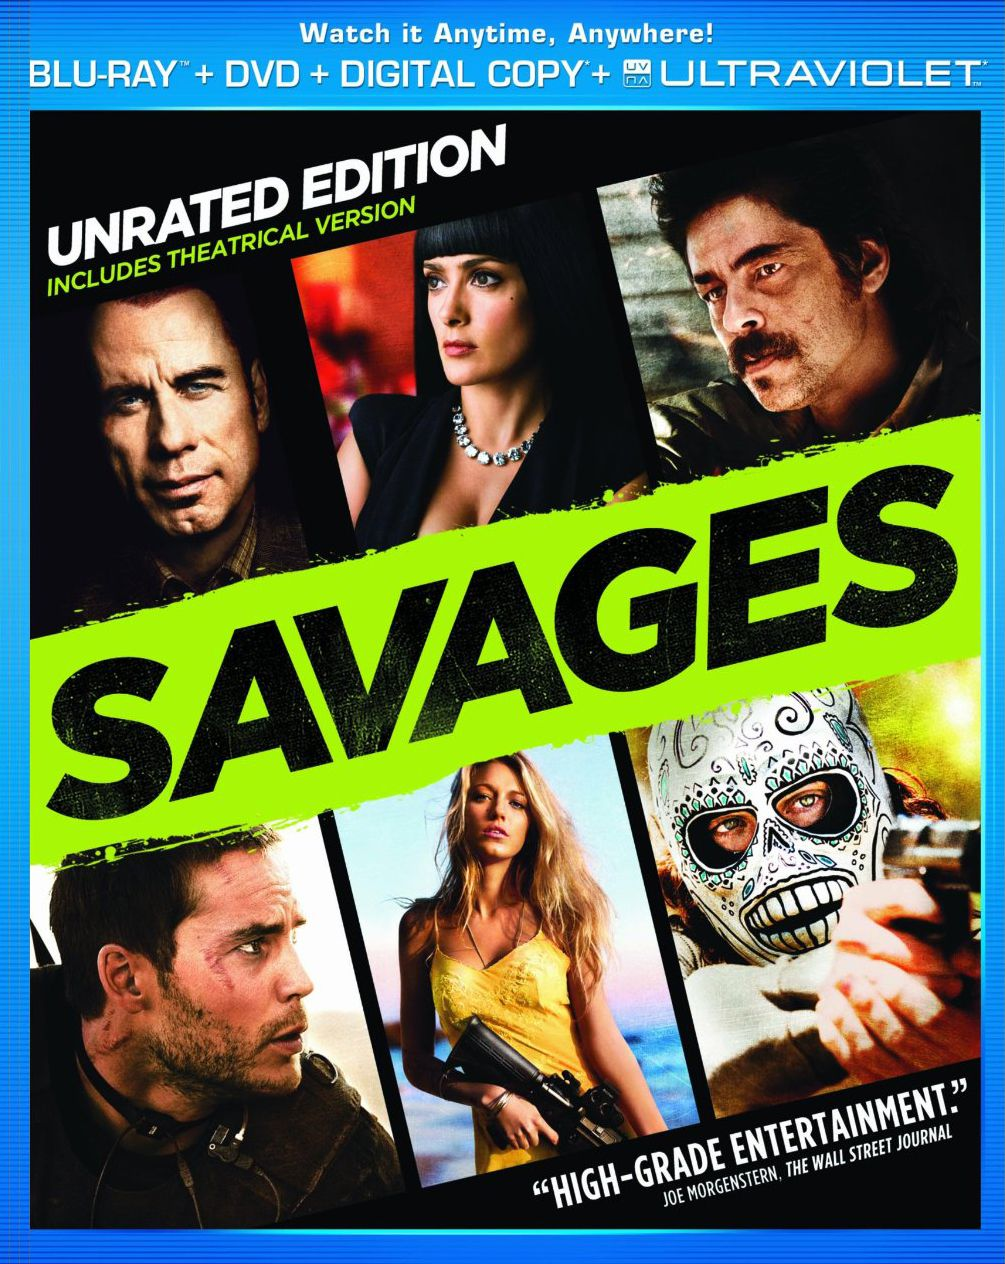 Publicity still for Savages